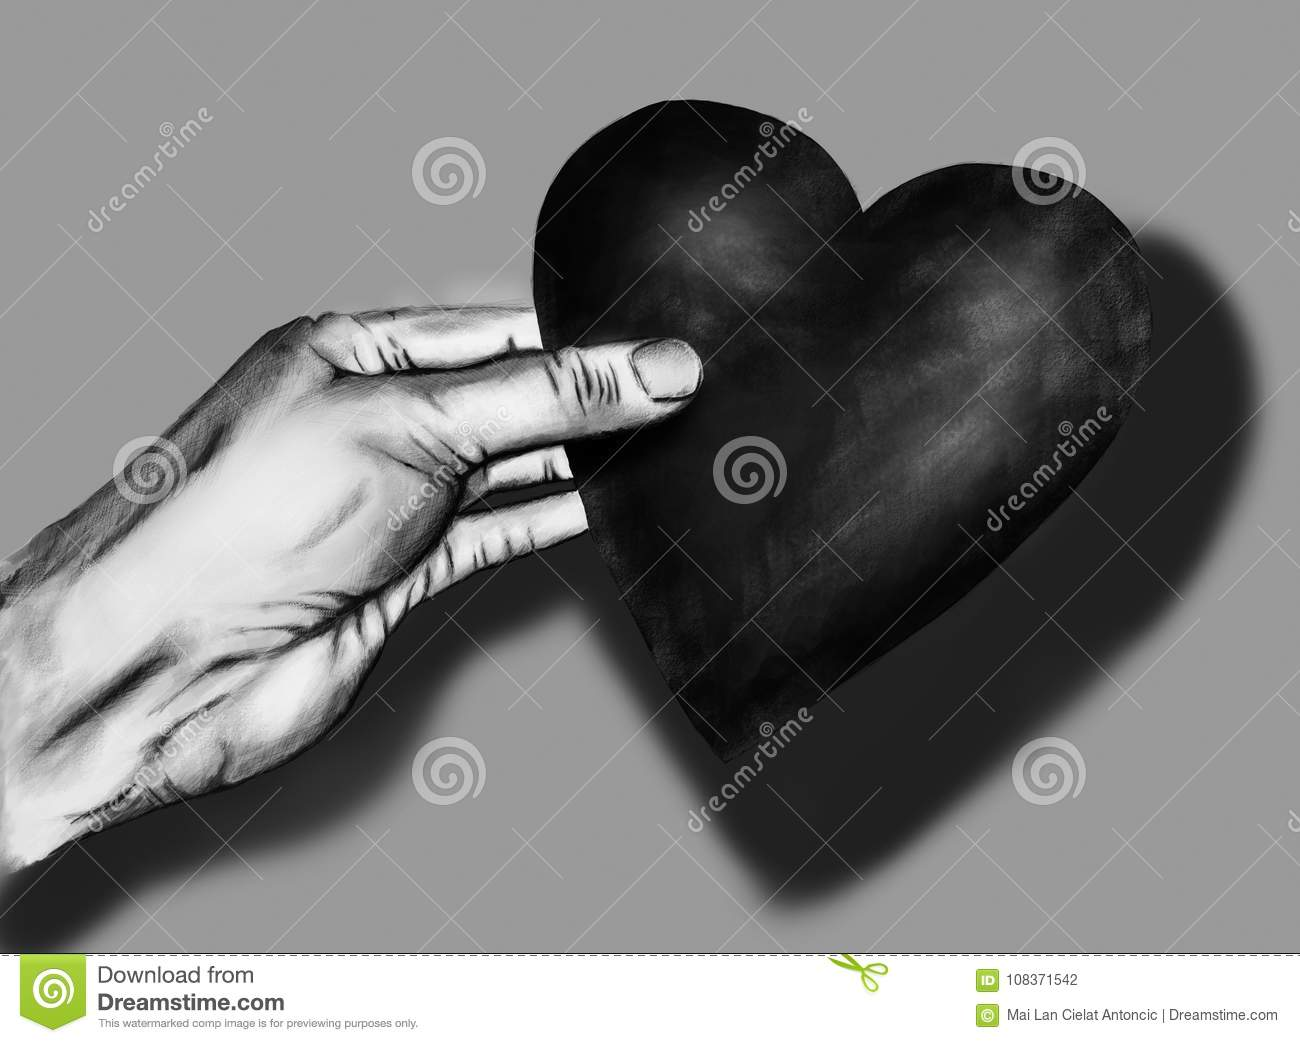 Realistic Heart Painting Stock Illustrations 439 Realistic Heart Painting Stock Illustrations Vectors Clipart Dreamstime